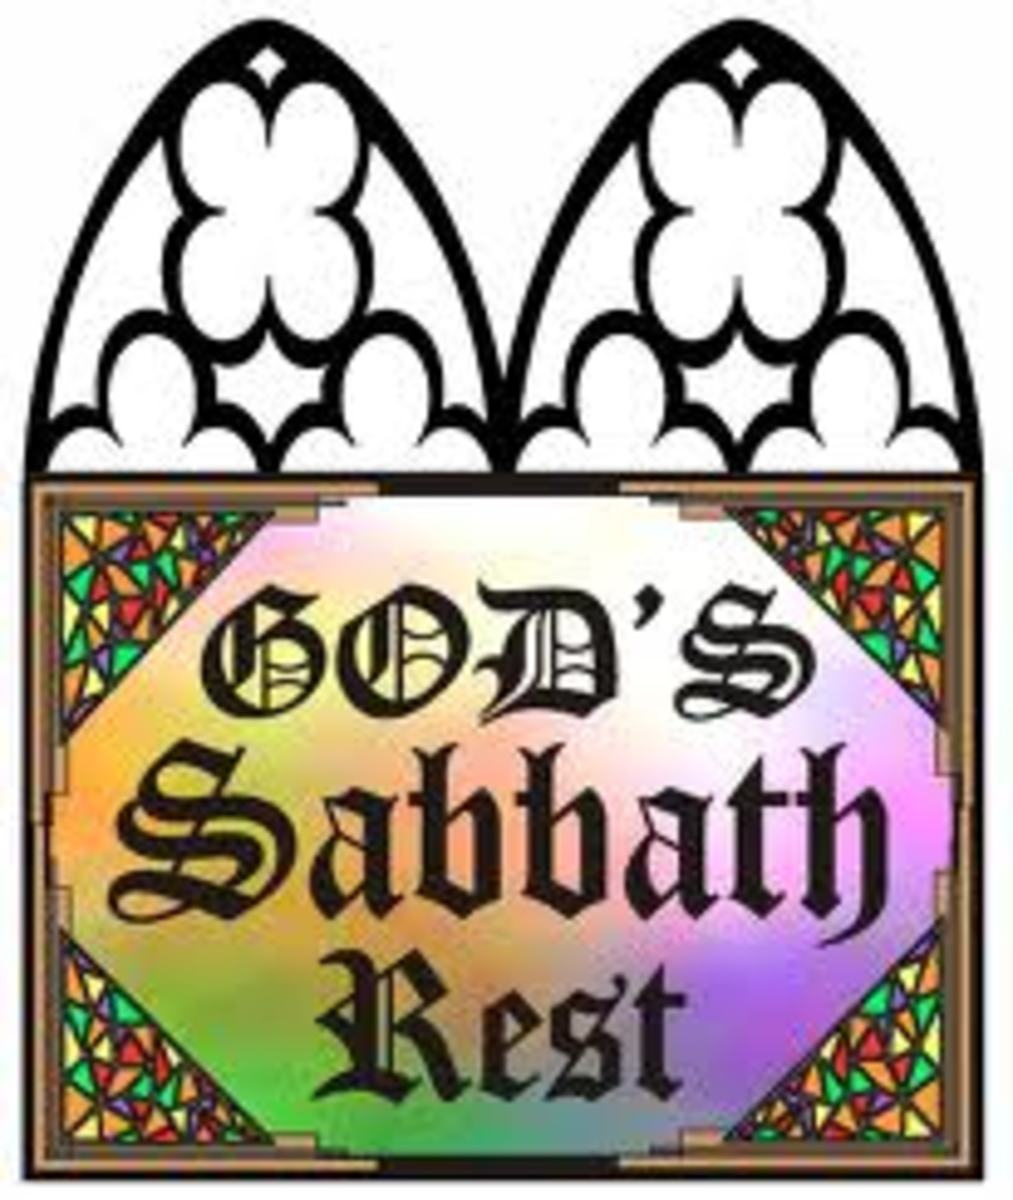 Remember the Sabbath Day: Saturday, Sunday or Everyday?